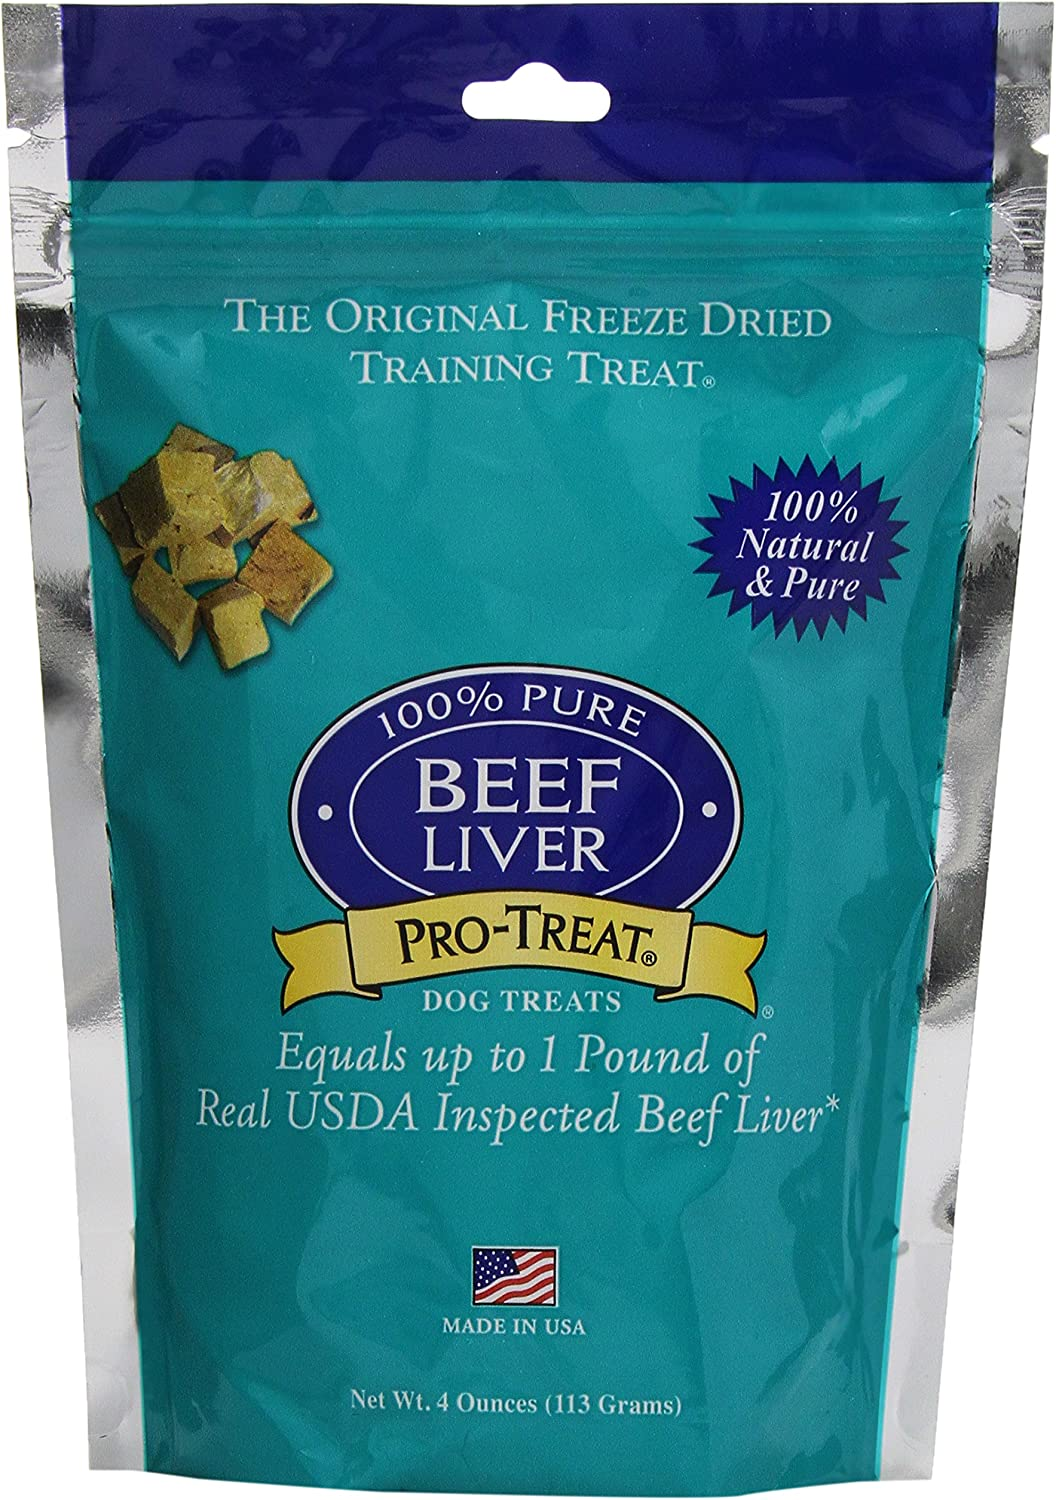 Stewart Pro-Treat Max 90% OFF Freeze Dried Beef famous Liver In Single Dog Treats